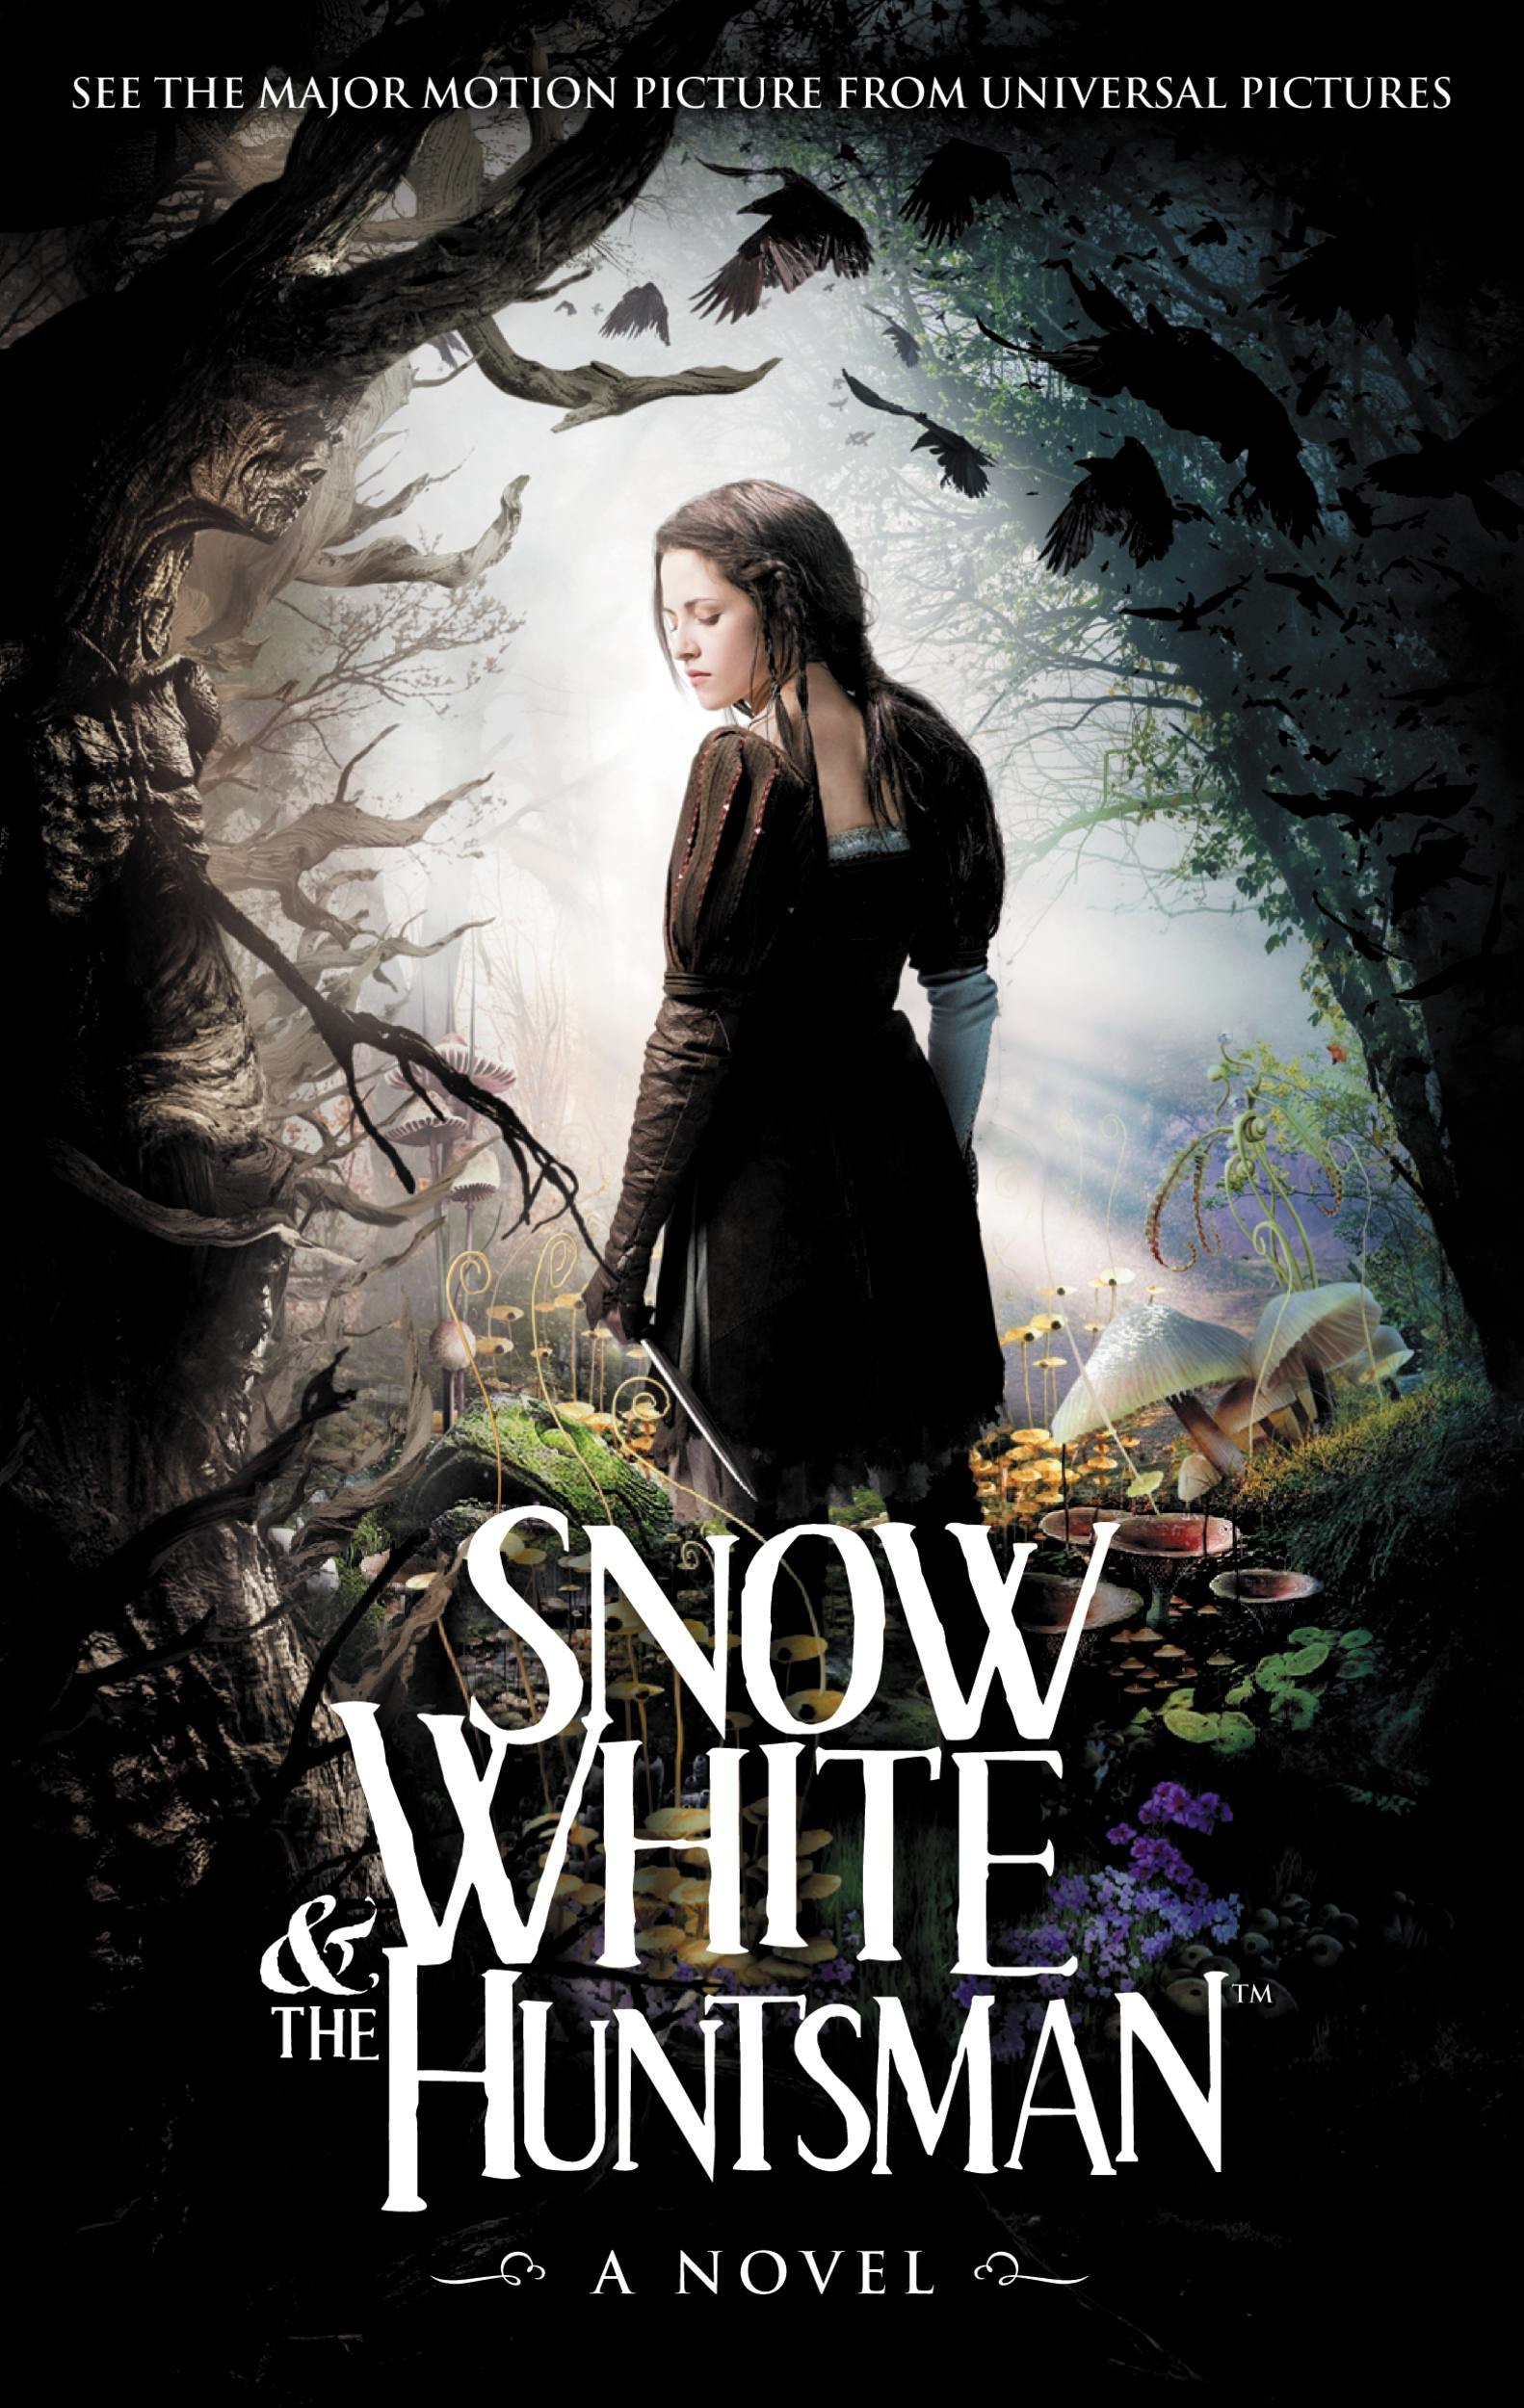 Snow White & the Huntsman By: Evan Daugherty,Hossein Amini,John Lee Hancock,Lily Blake